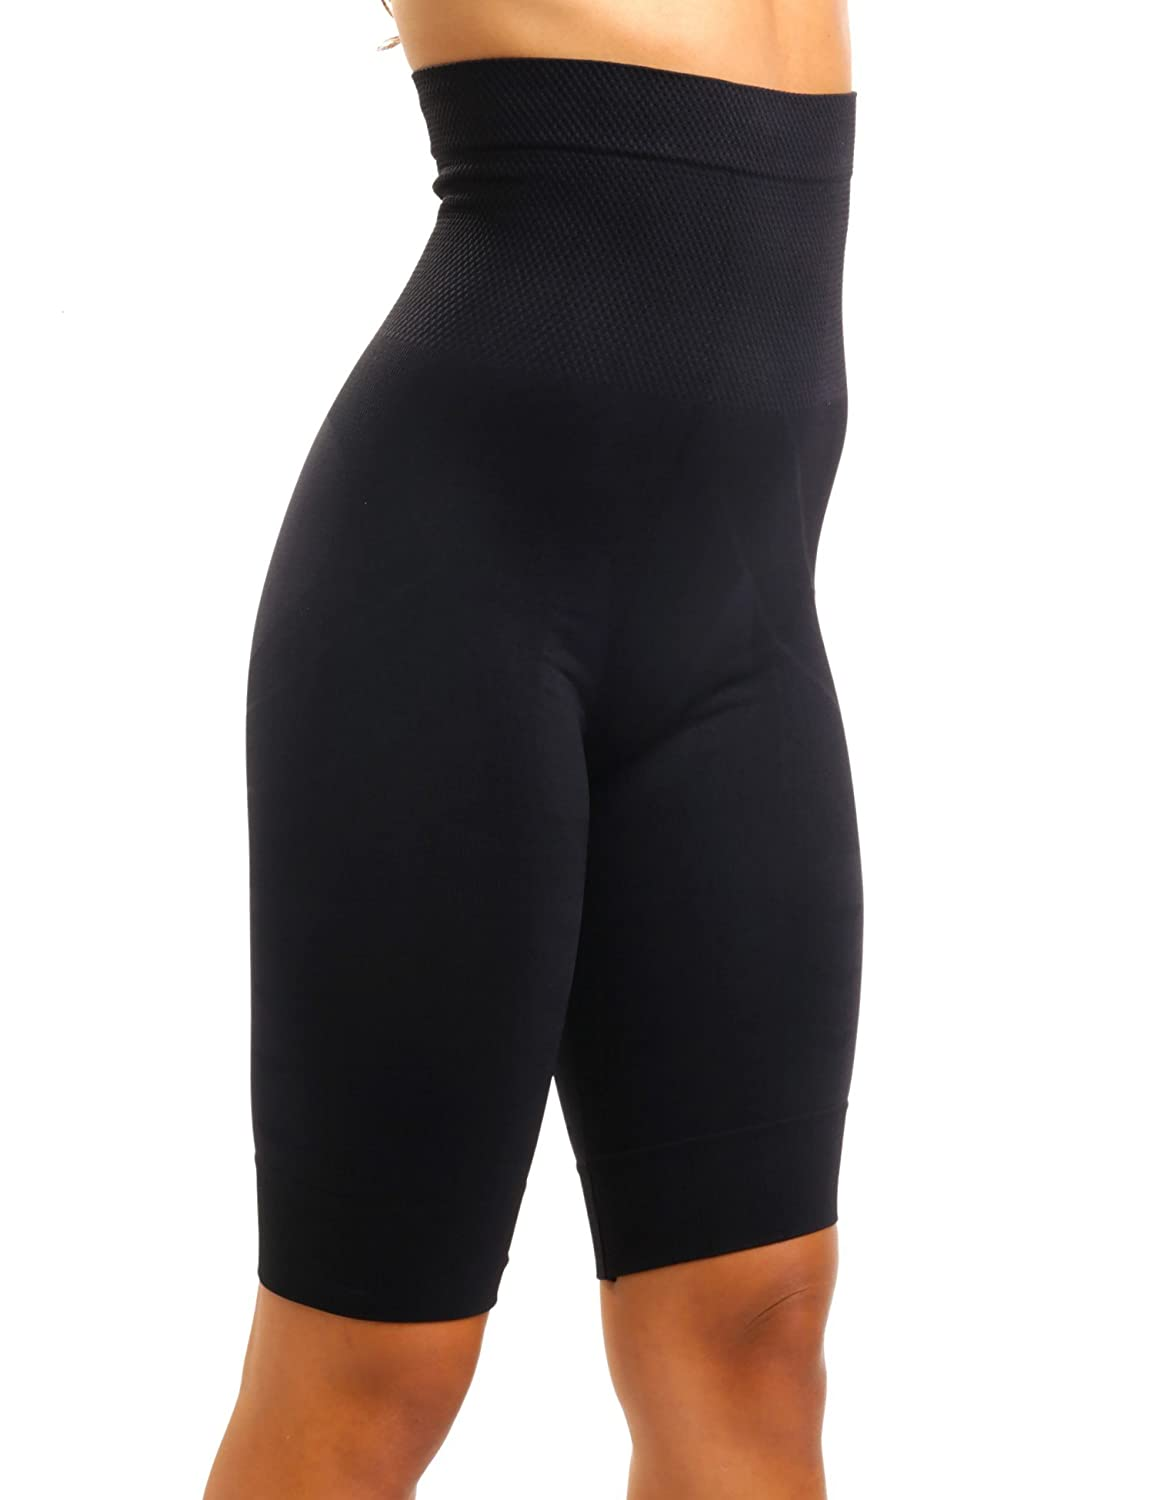 Damen Shapewear Miederpants